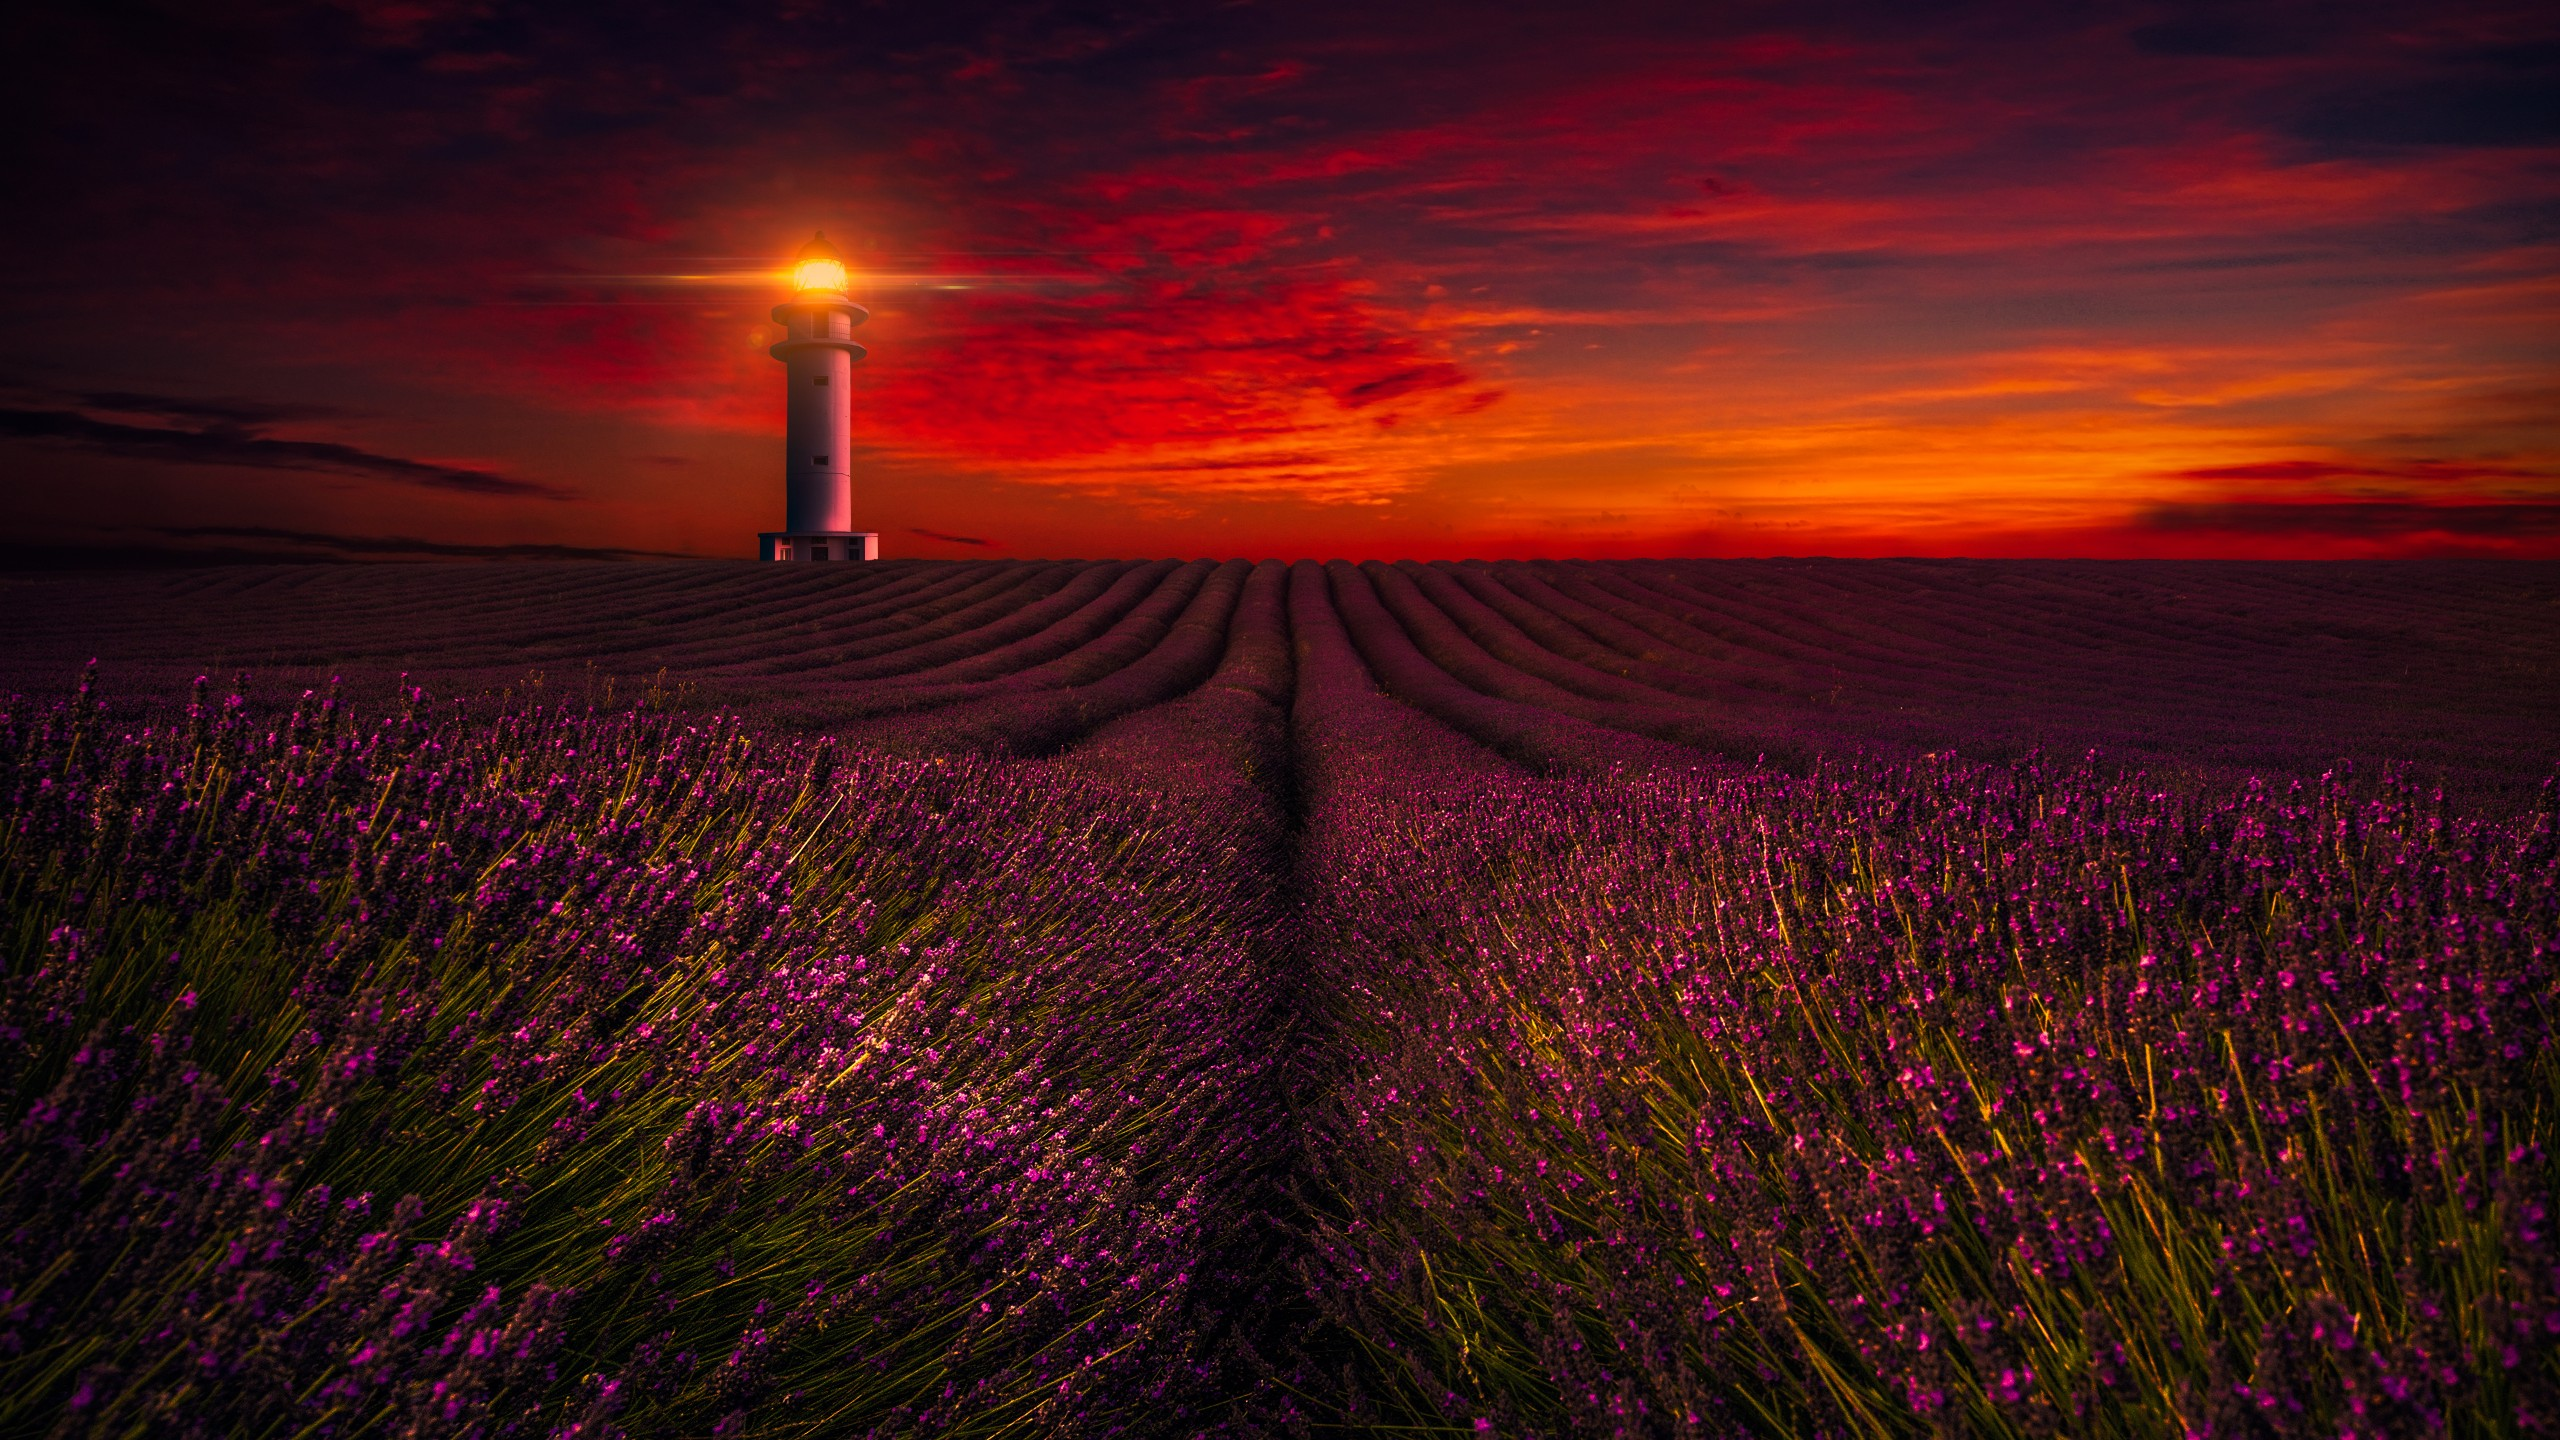 Fall Fantasy Wallpapers Sunset Lavender Field Lighthouse 5k Wallpapers Hd